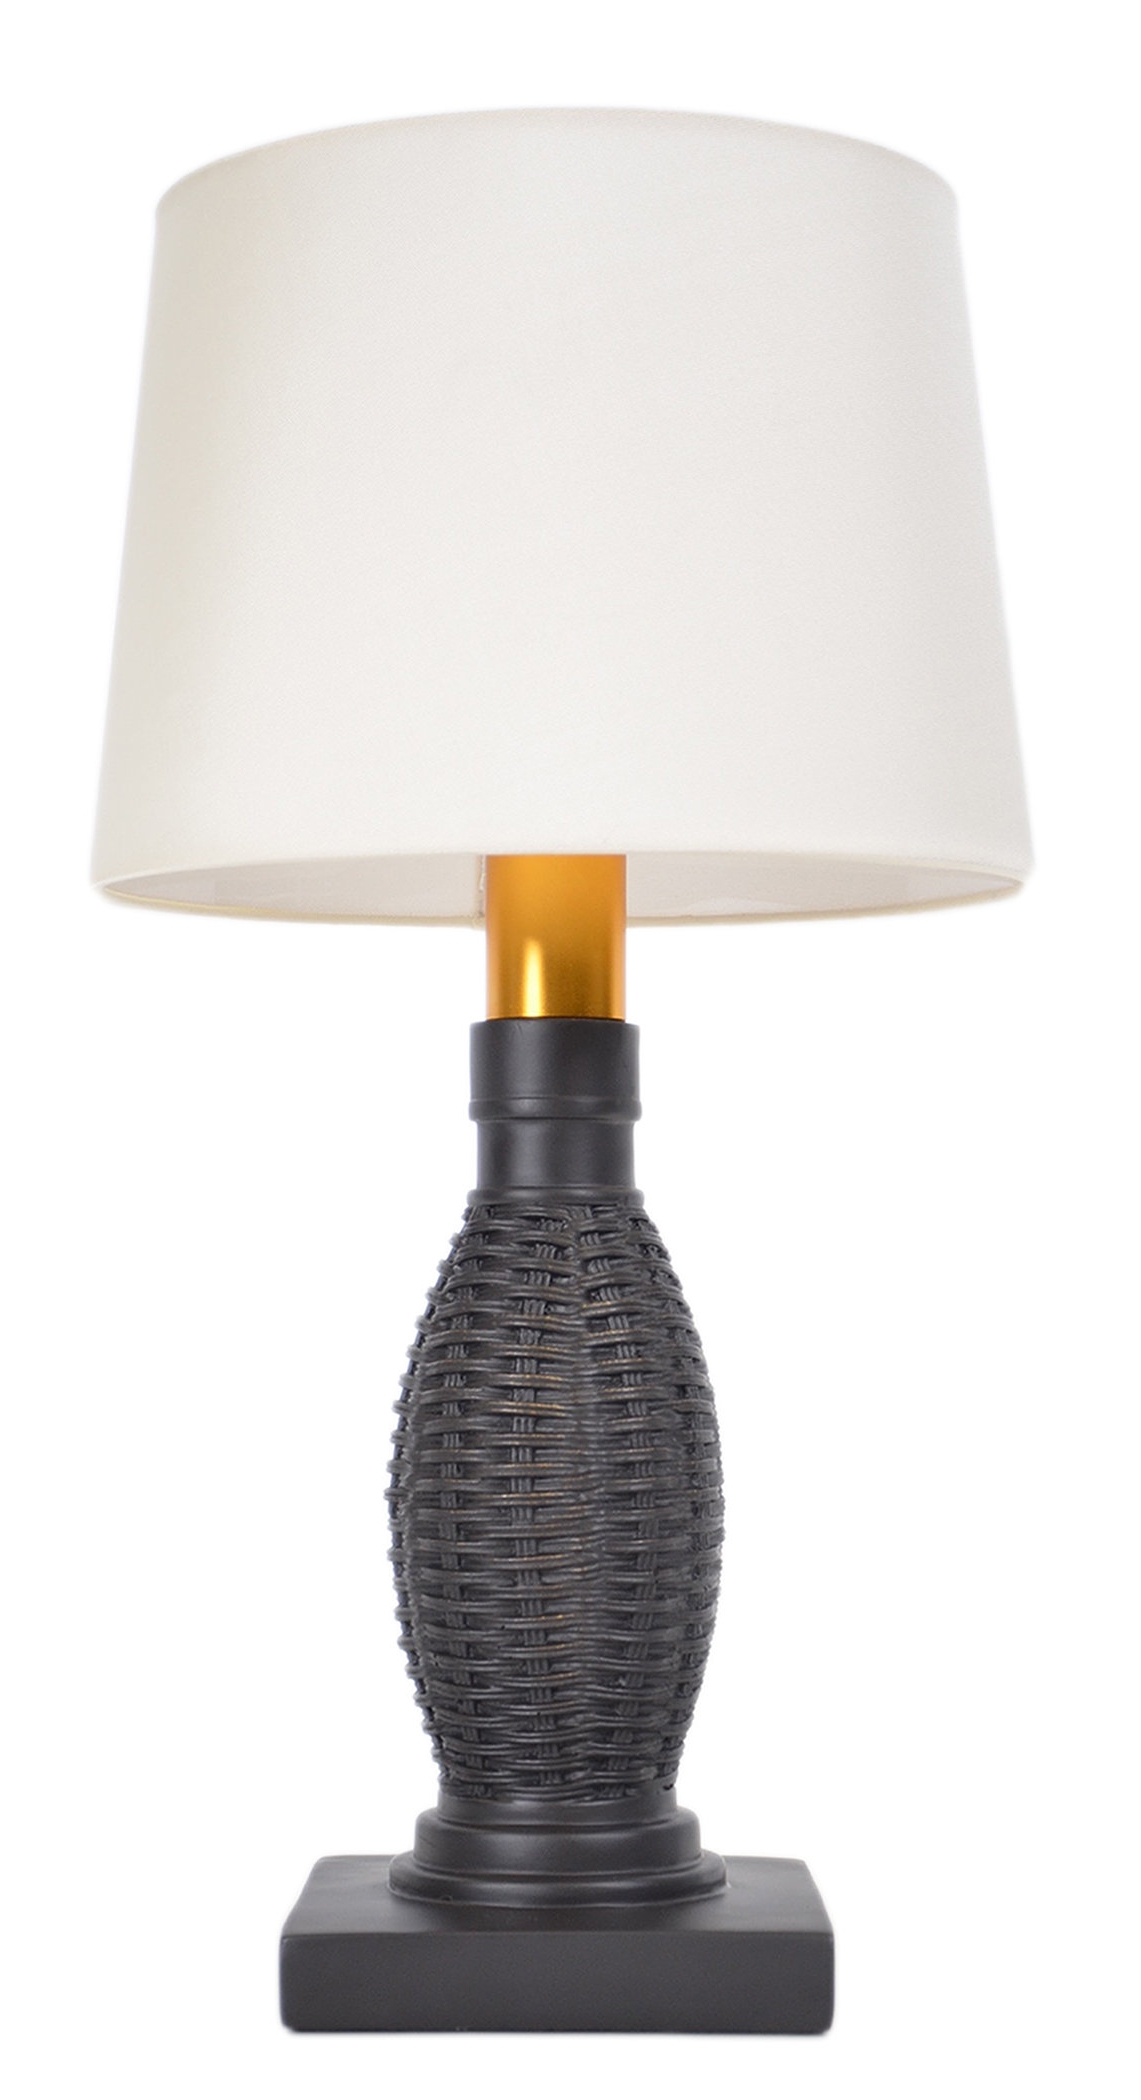 2019 Cordless Living Room Table Lamps With Unique Wireless Table Lamps Torch Light All Weather 24 Lamp Reviews (View 1 of 20)